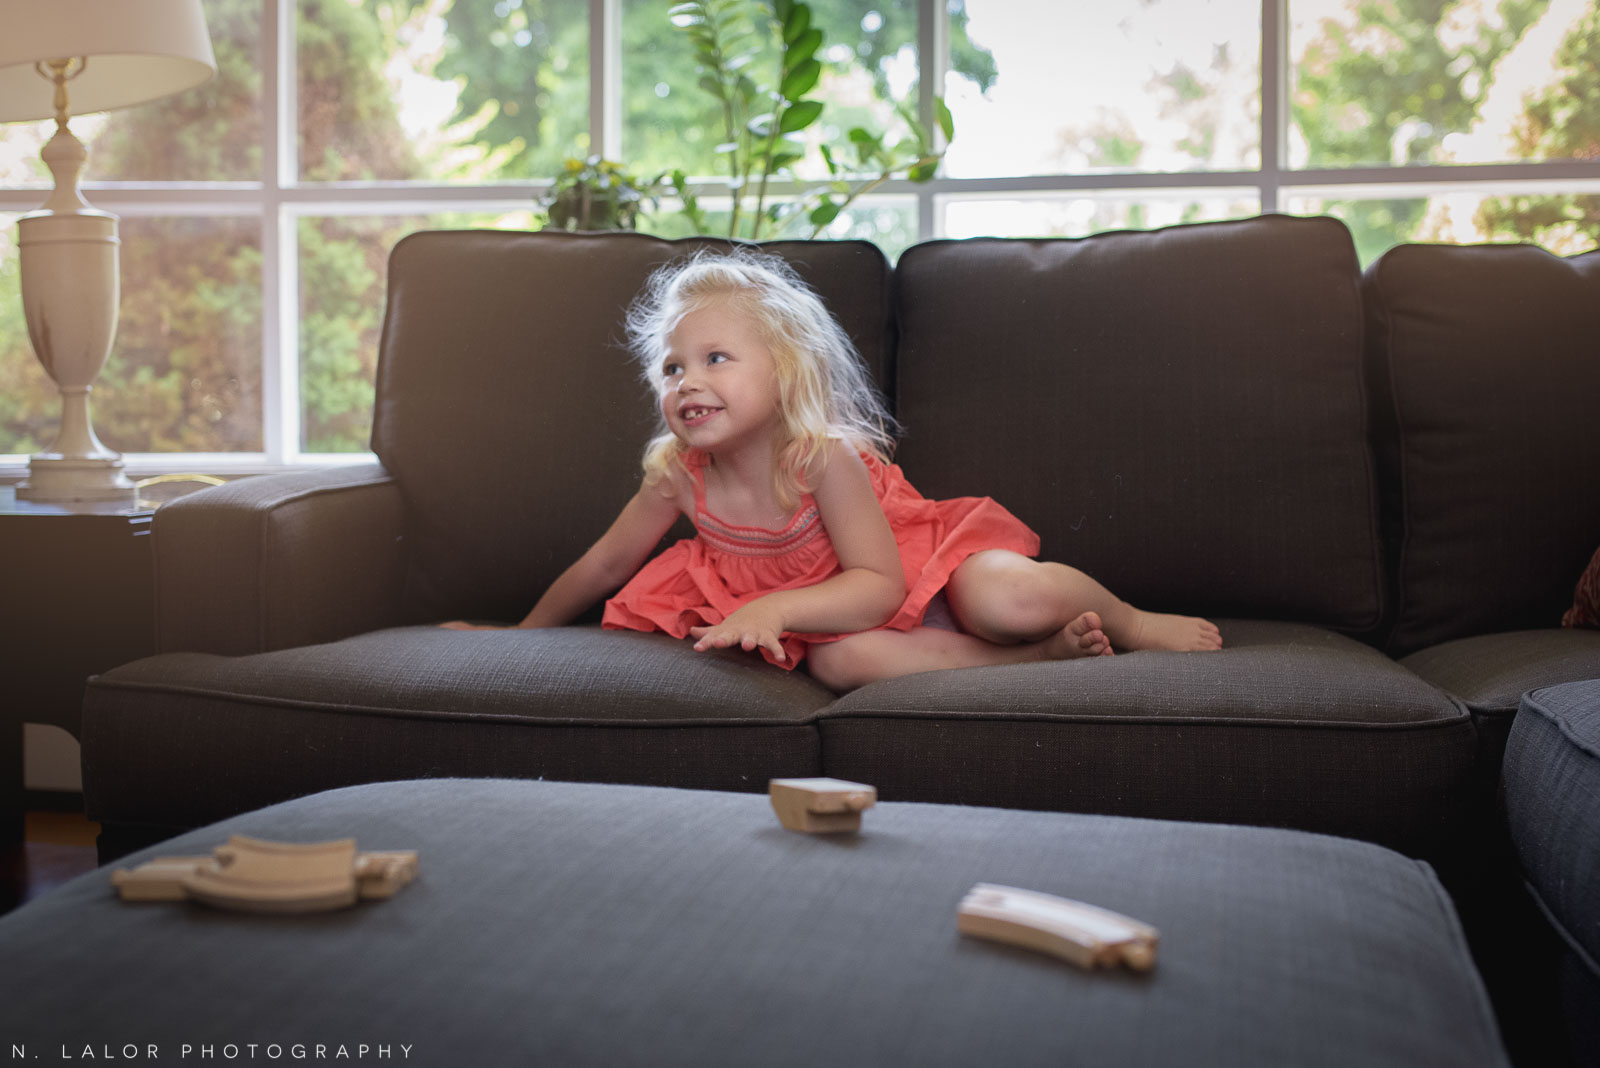 Ula has a lot of energy and loves jumping on the couch, which she did a lot of during our photo session. There was no reason to tell her to stop, I simply waited for a quiet moment and got this lovely candid shot of her.